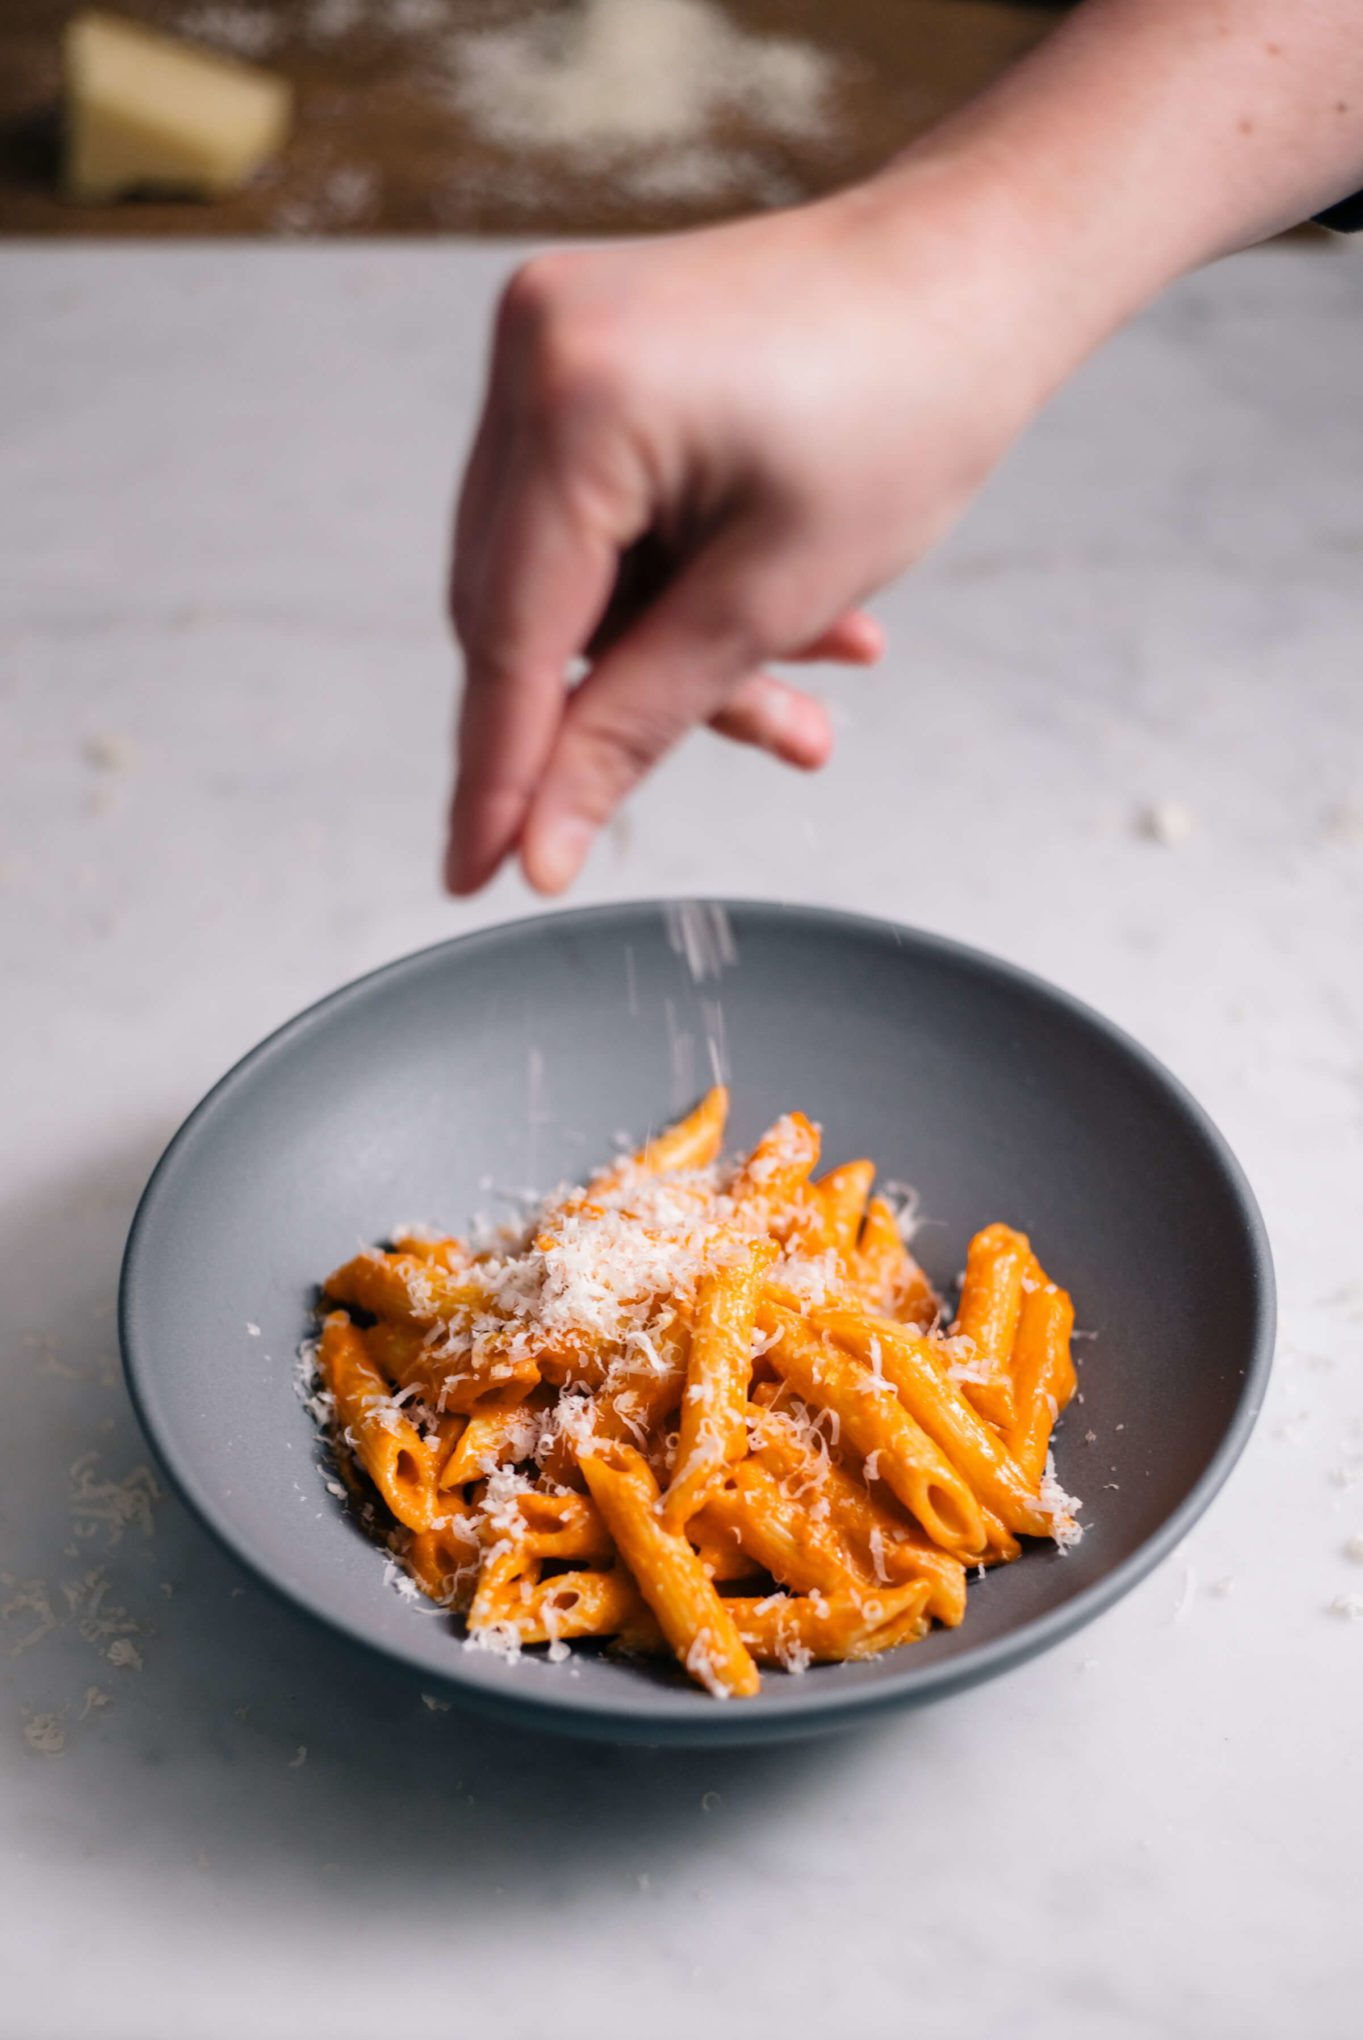 Penne alla Vodka is a simple tomato based italian pasta recipe, made by The Taste SF.